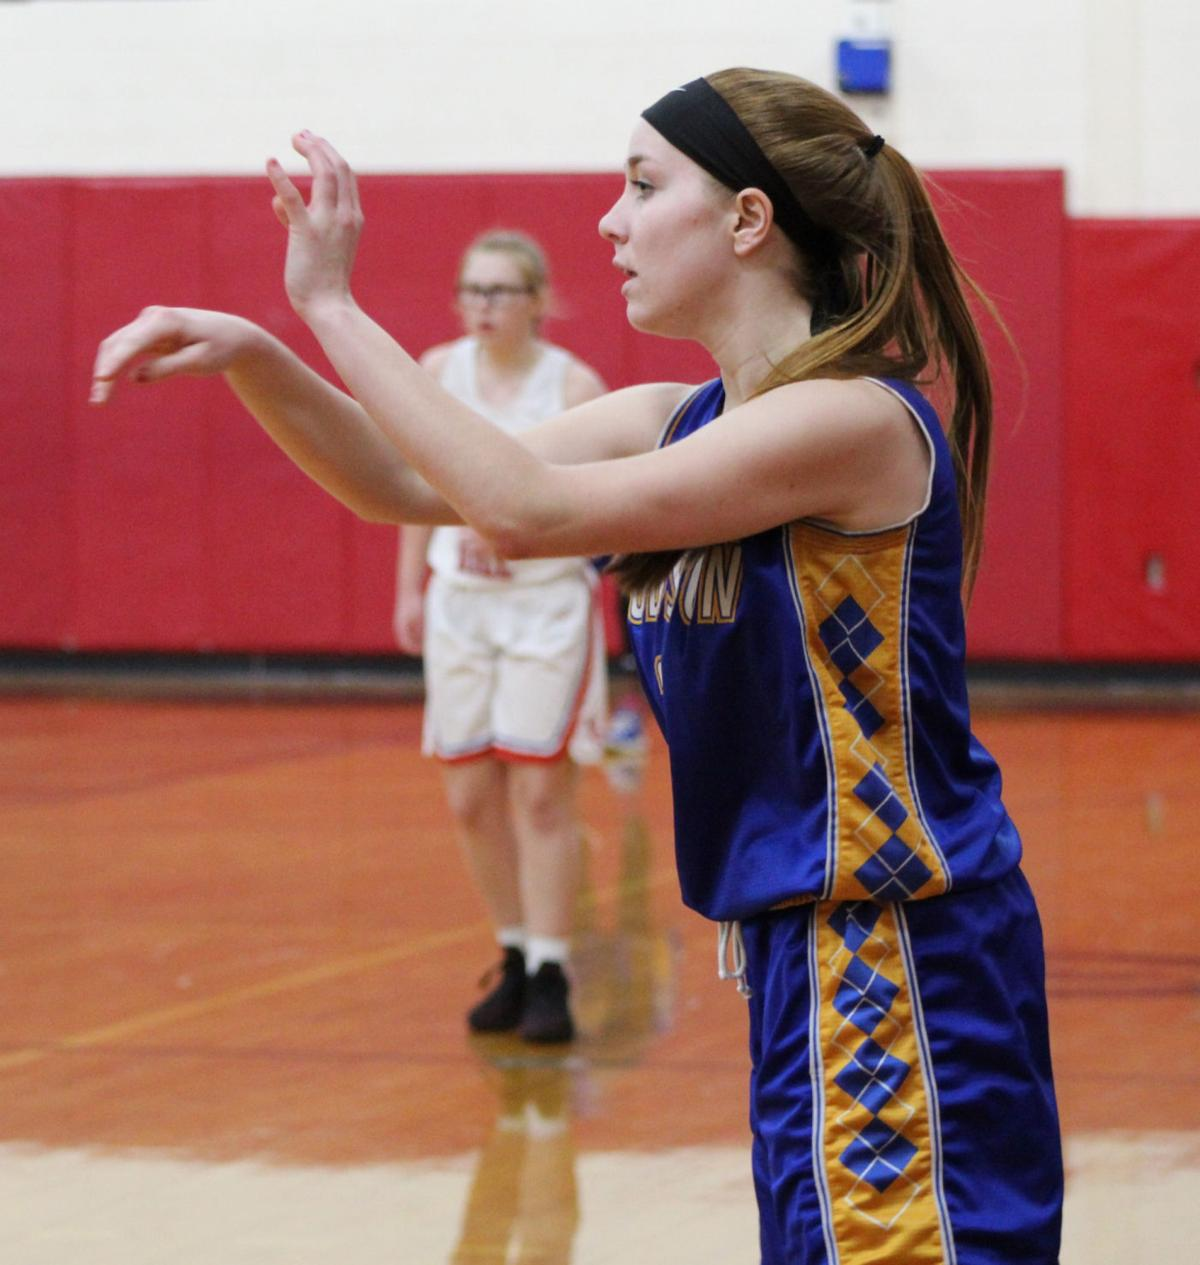 Maple Hill girl top Hudson to clinch Patroon title